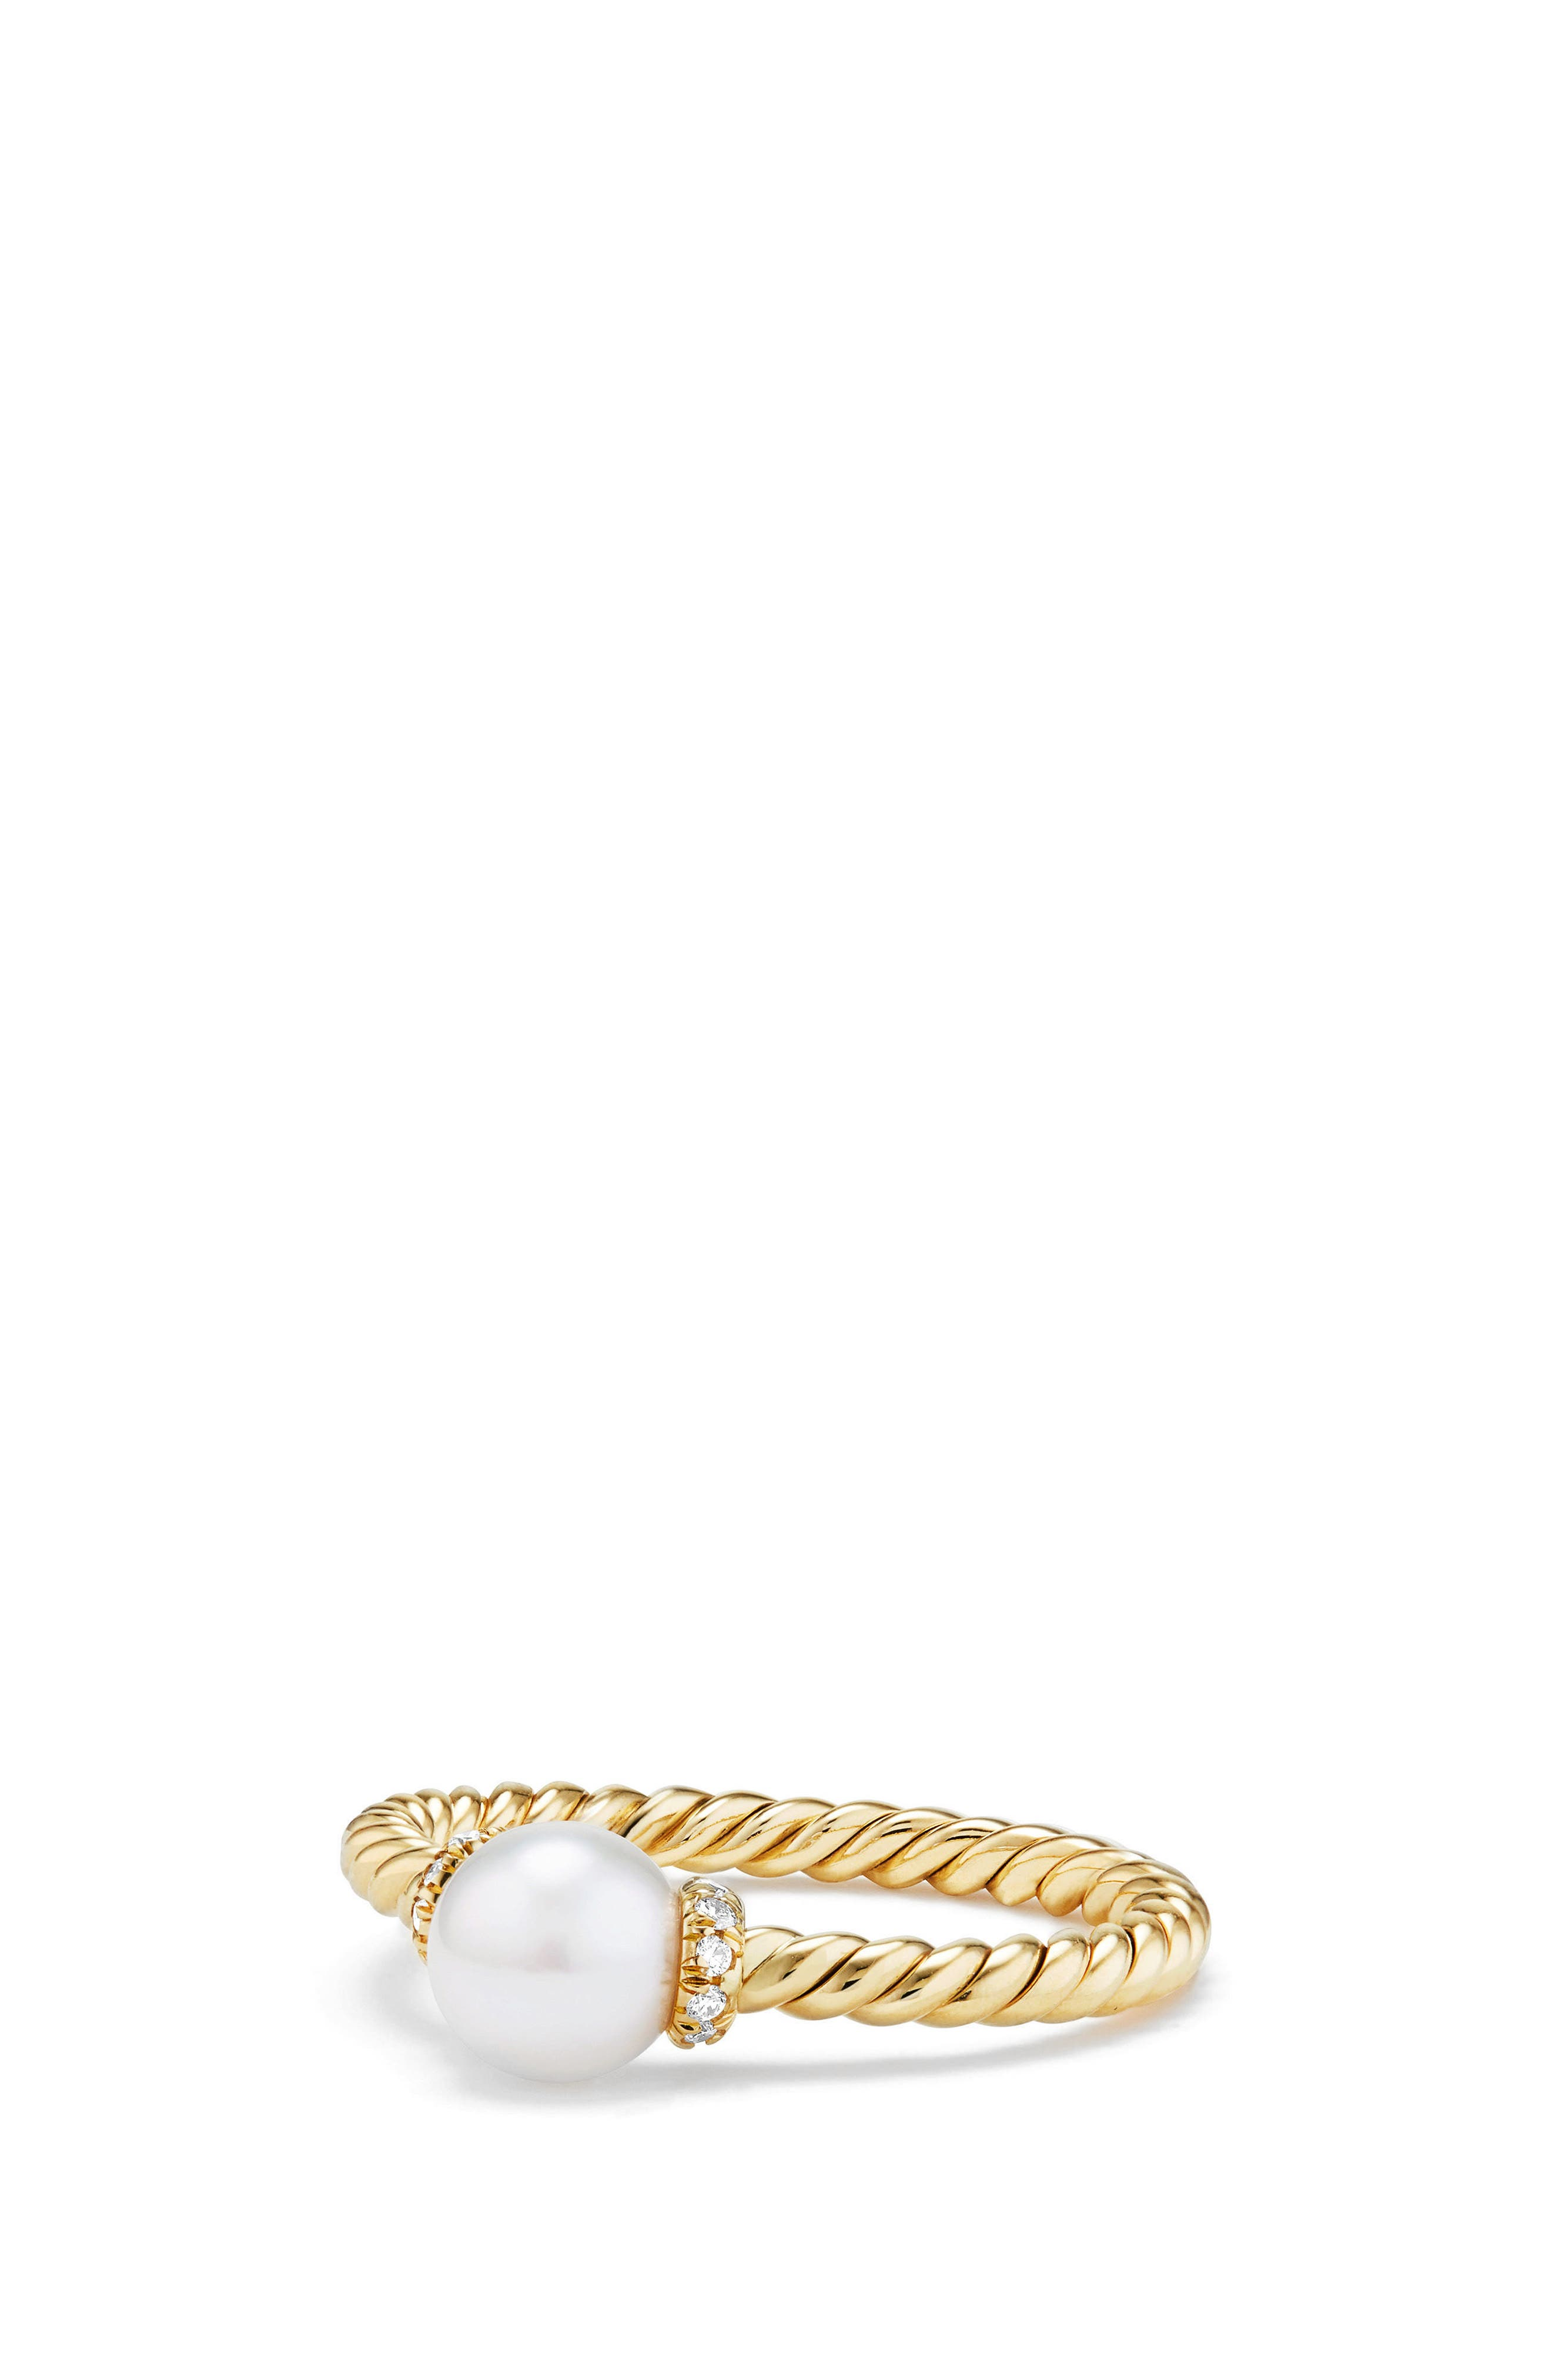 Solari Station Ring with Pearl & Diamonds in 18K Gold,                         Main,                         color, Yellow Gold/ Diamond/ Pearl